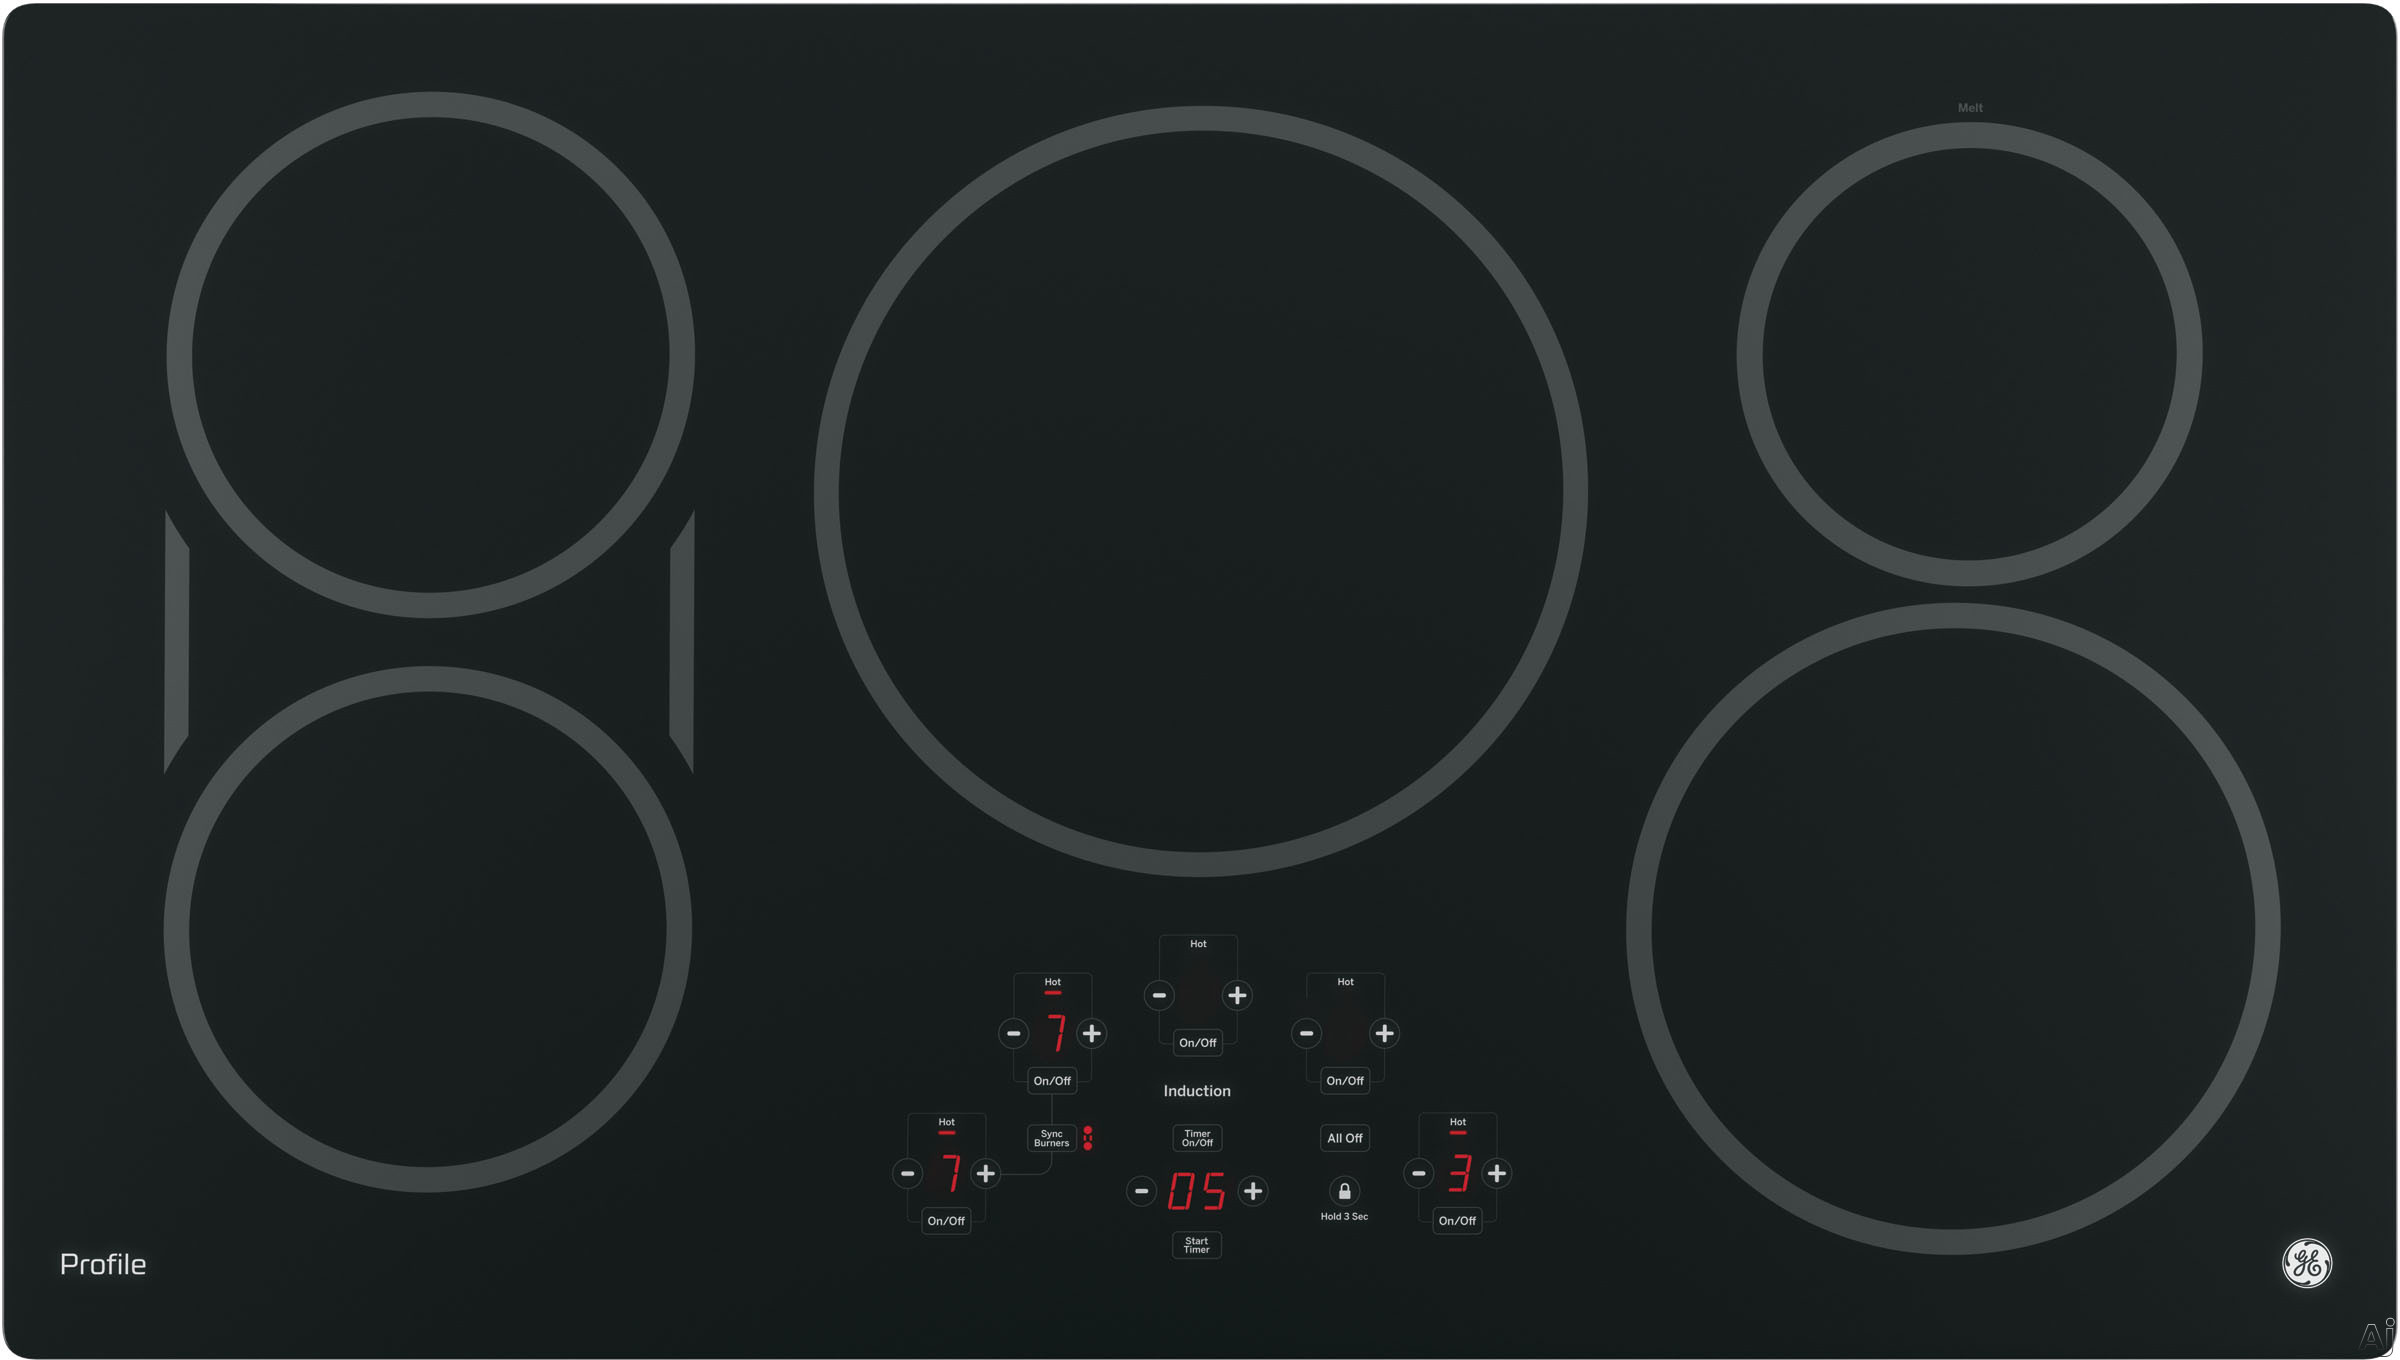 GE Profile PHP9036DJBB 36 Inch Induction Cooktop with 5 Induction Elements, 3,700-Watt Element, Pan Size Sensors, SyncBurners, Red LED Display, Kitchen Timer, ADA Compliant and GE Fits! Guarantee: Bla